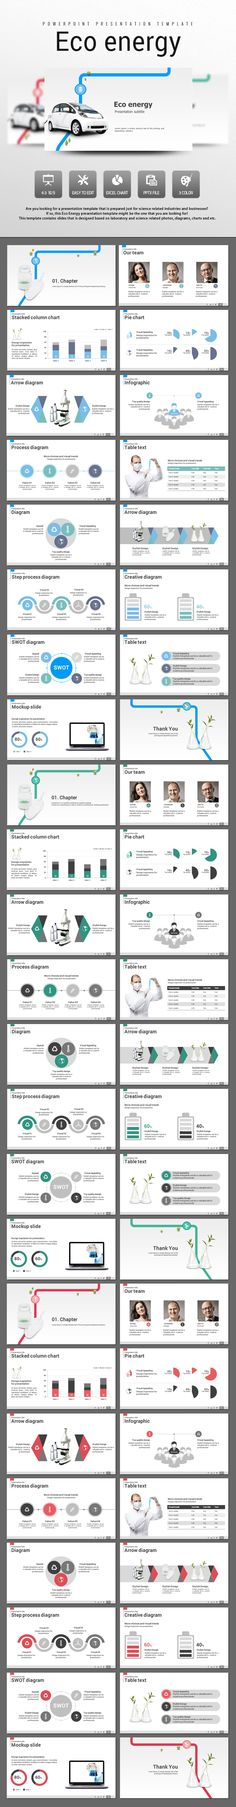 Eco Energy - PowerPoint Template. Download here: http://graphicriver.net/item/eco-energy/14778878?ref=ksioks